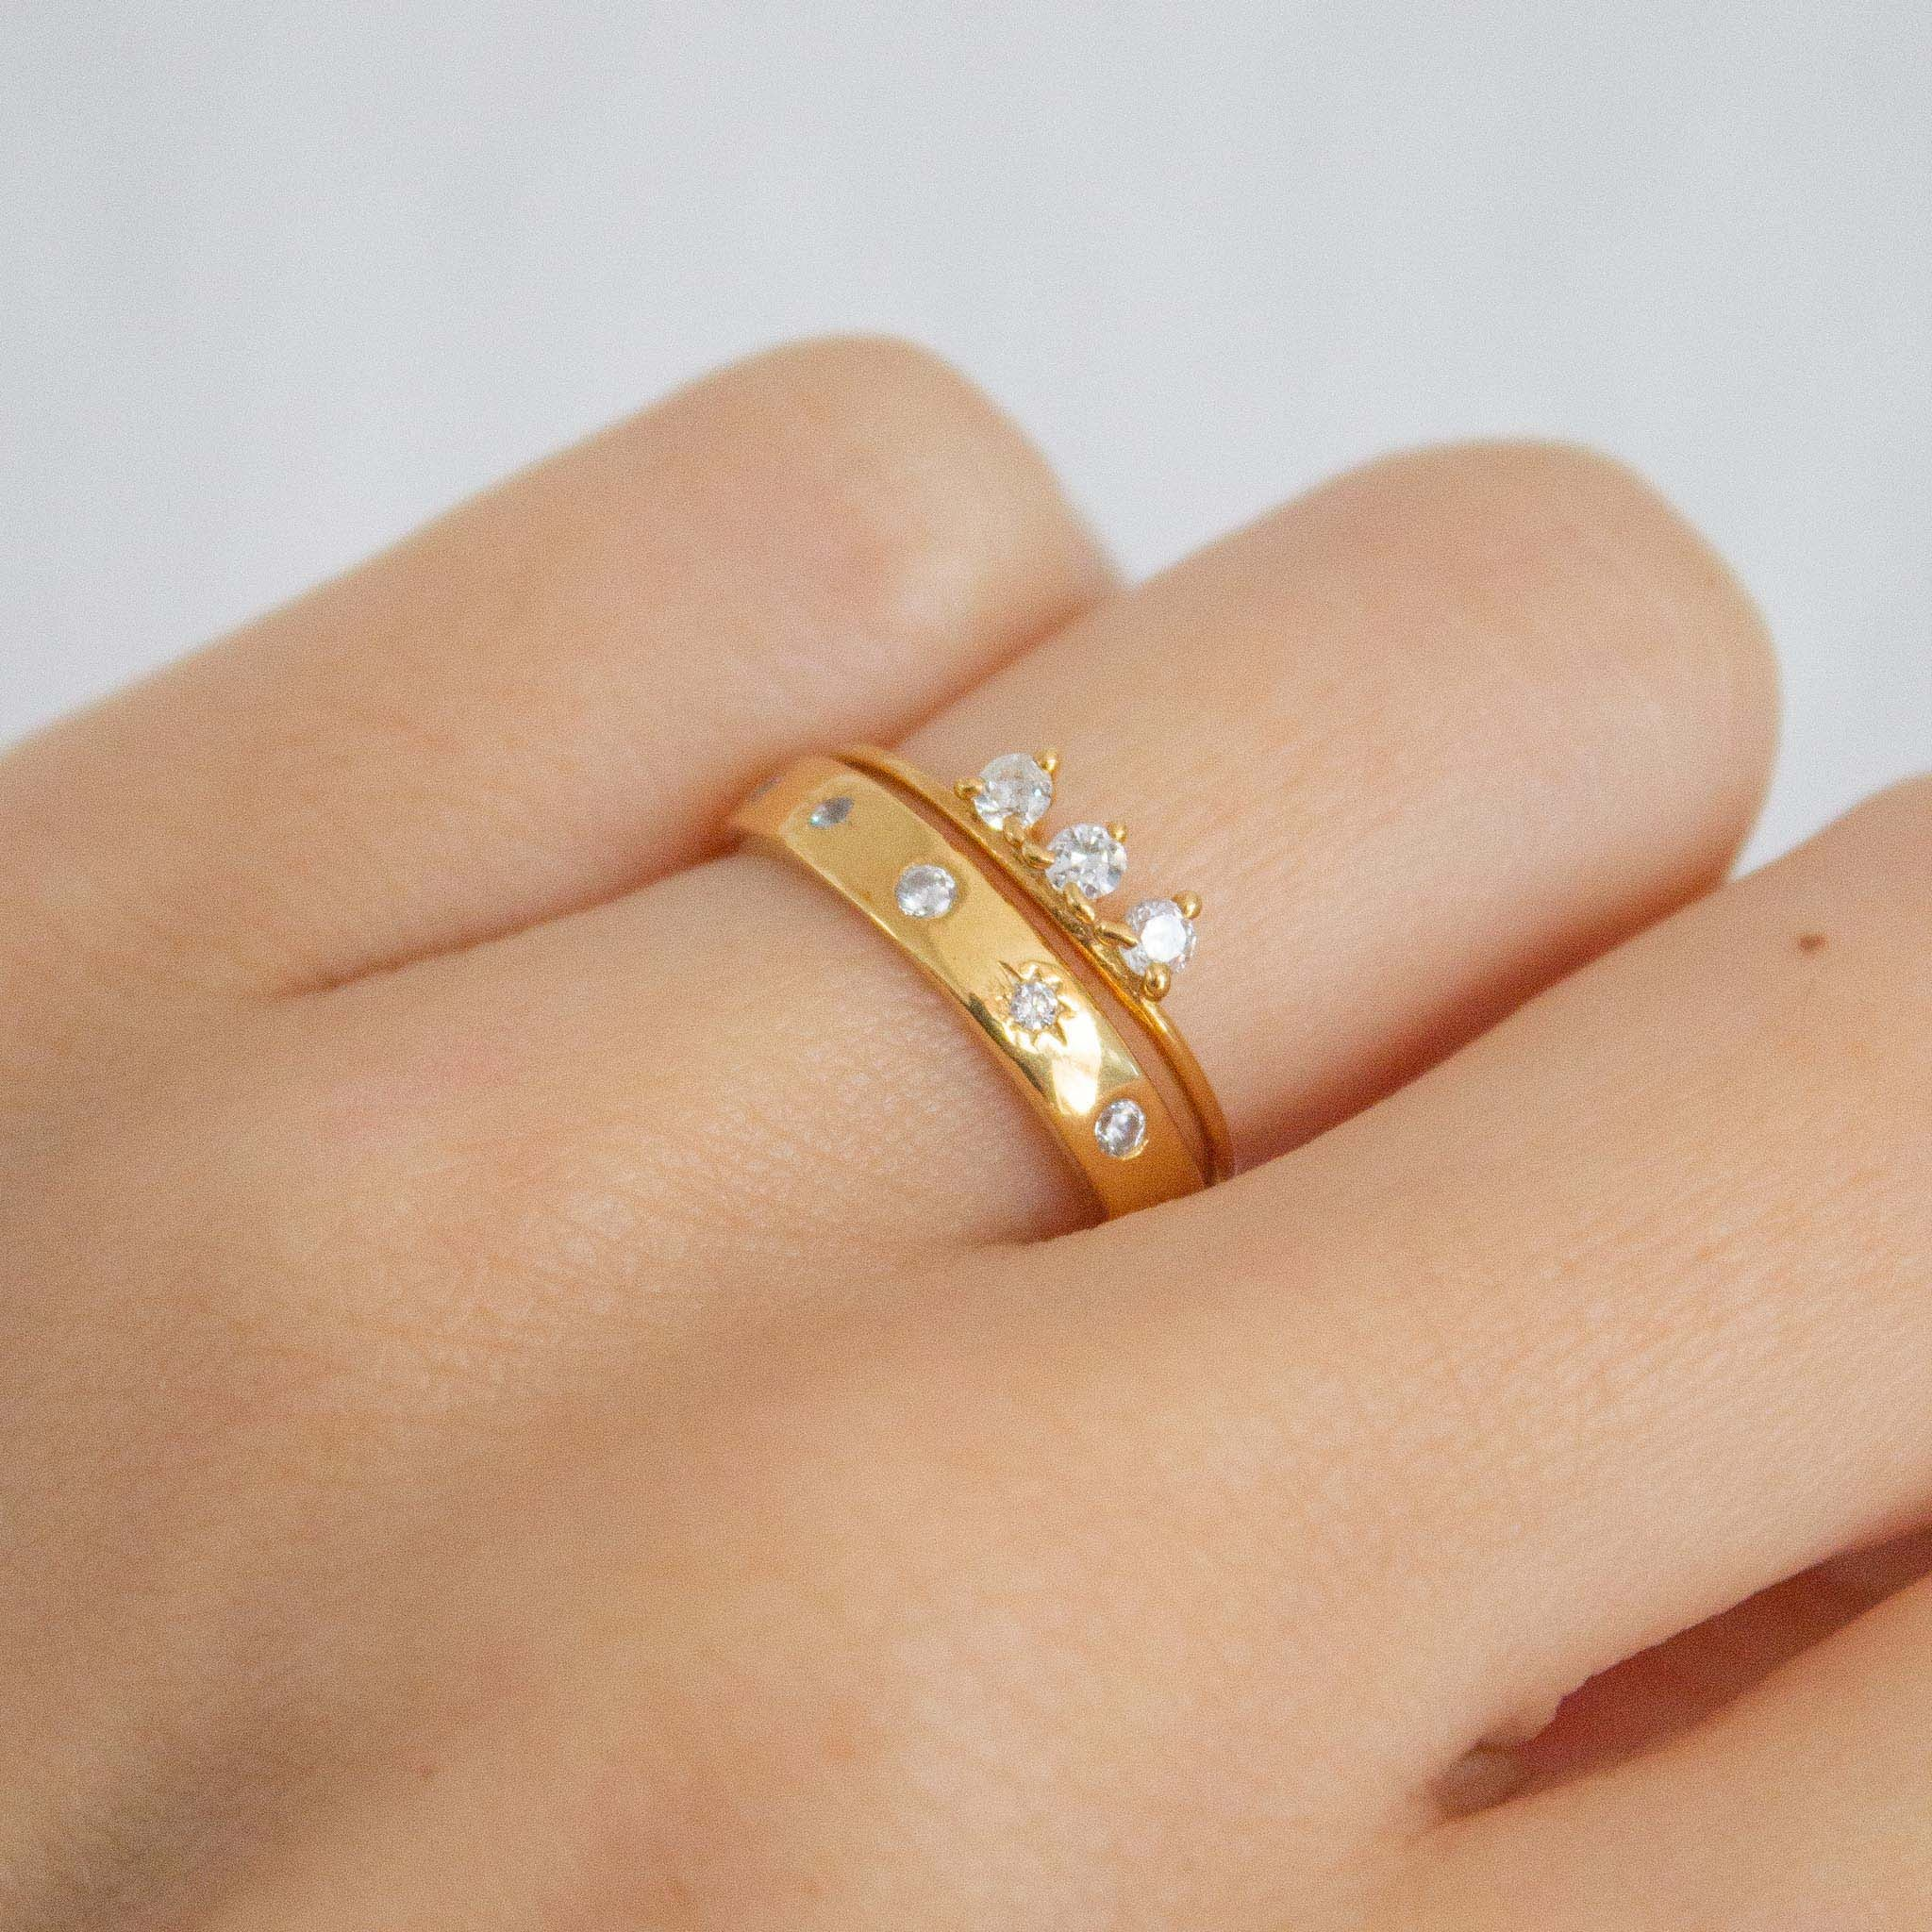 Celestial magic stacking ring ideas